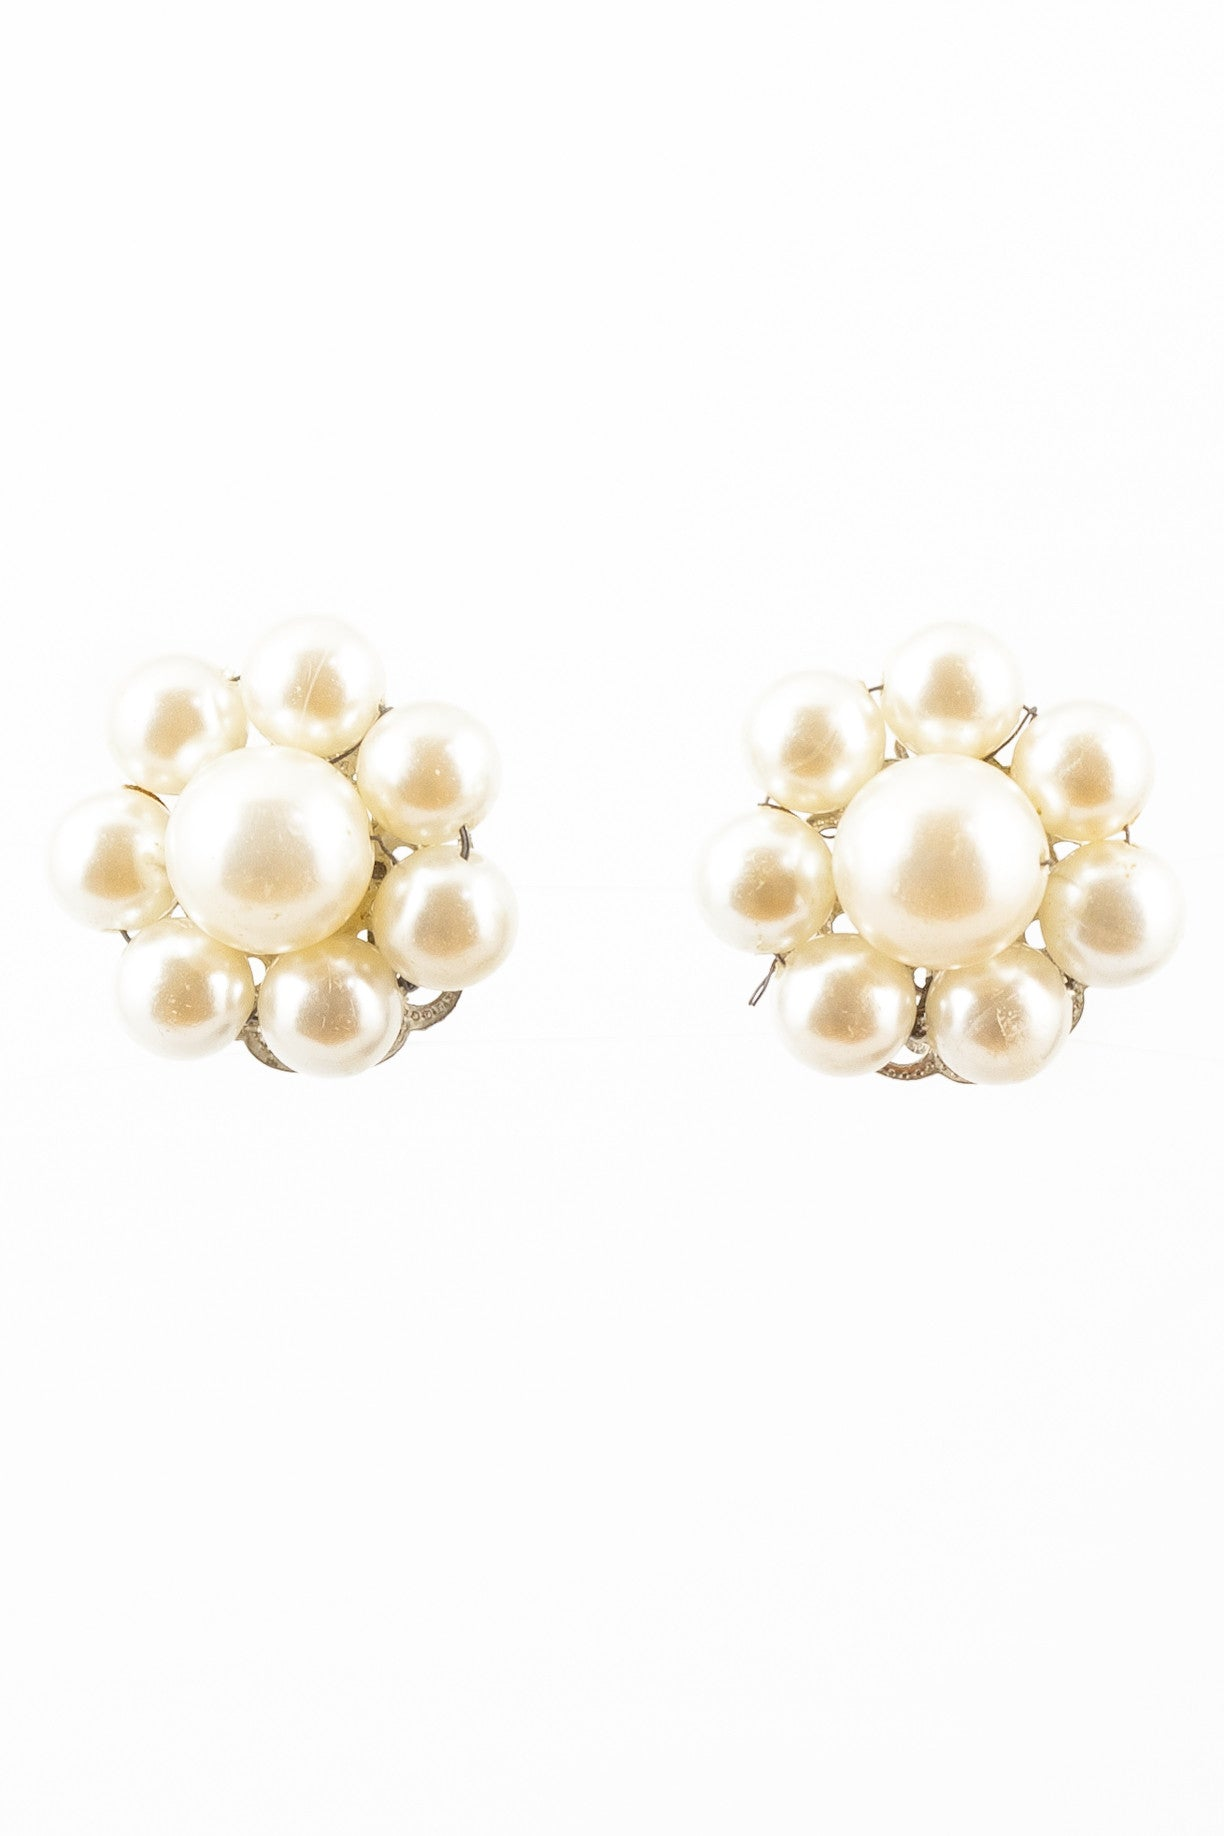 50's__Vintage__Pearl Floral Clips